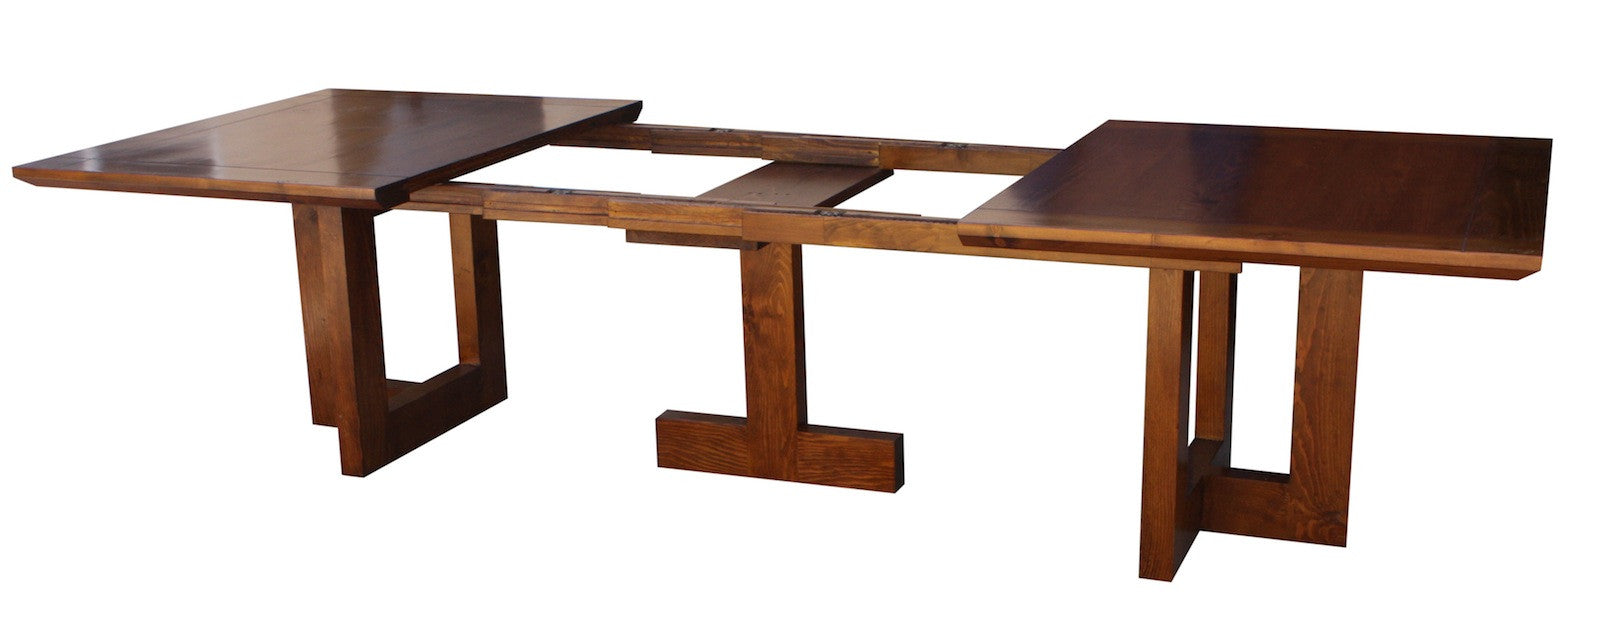 dining room tables with leaf extensions  collective dwnm, Dining tables